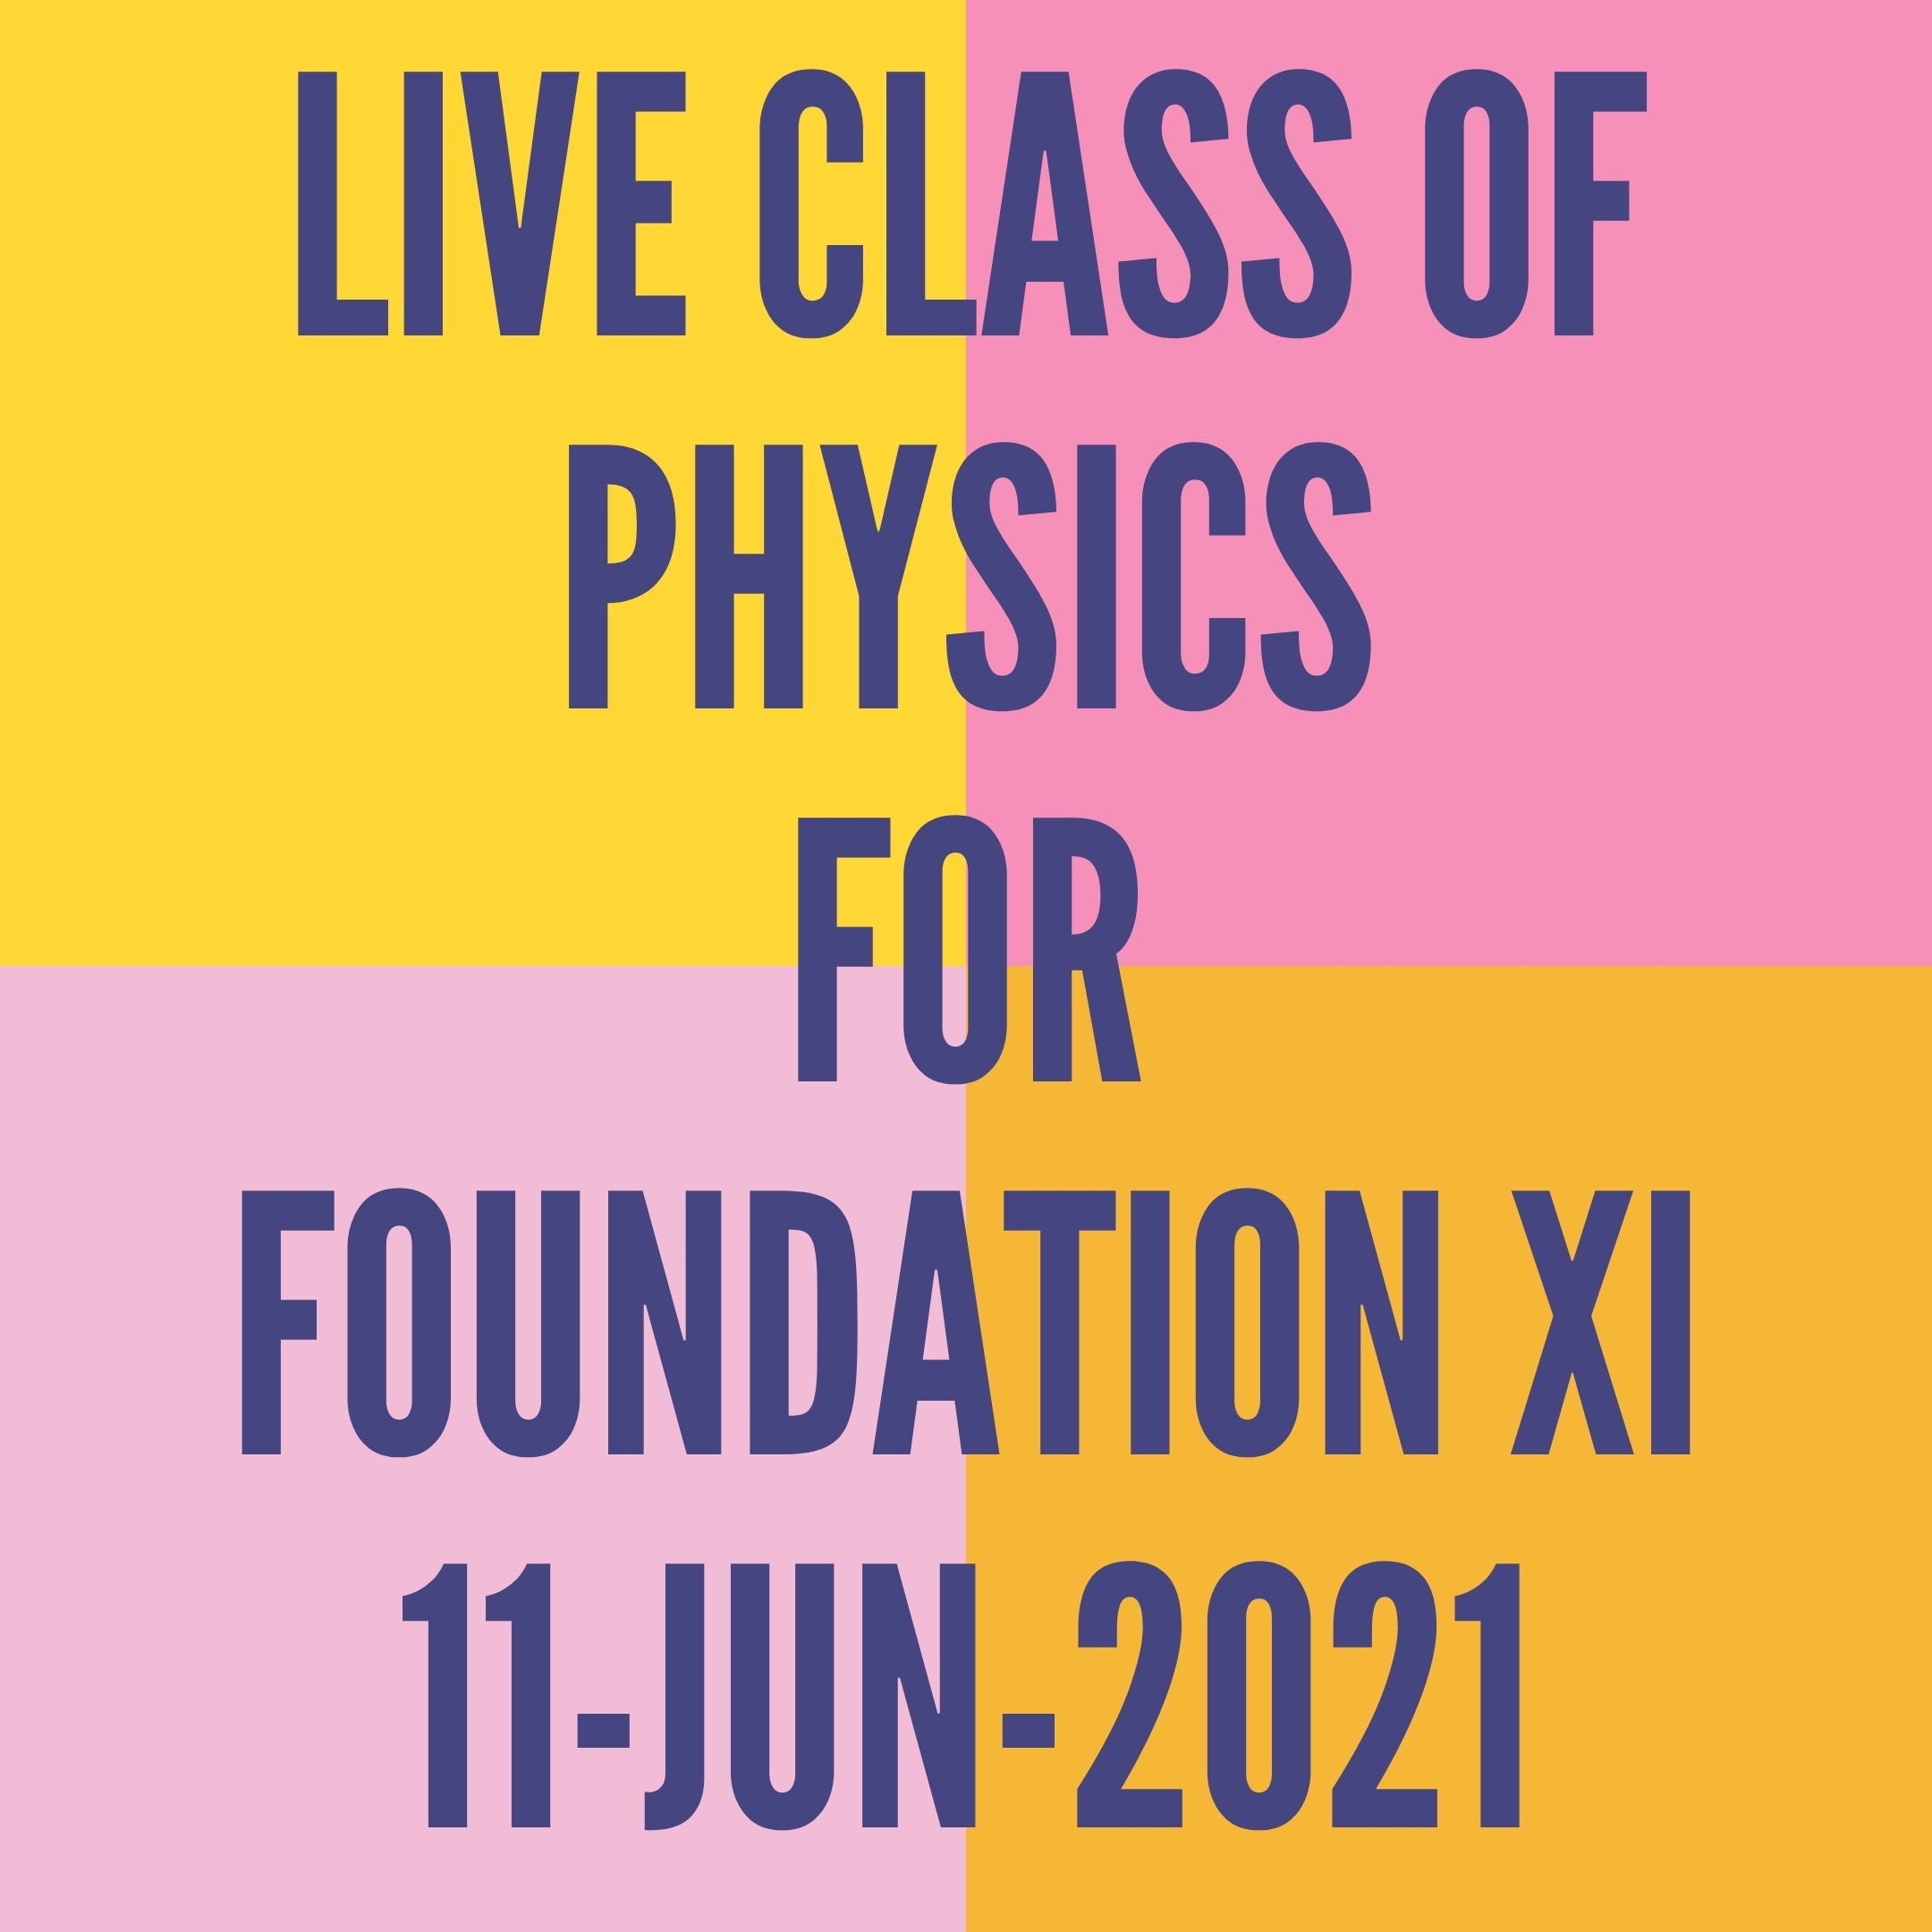 LIVE CLASS OF PHYSICS FOR FOUNDATION XI (11-JUN-2021) APPLIED MATHS